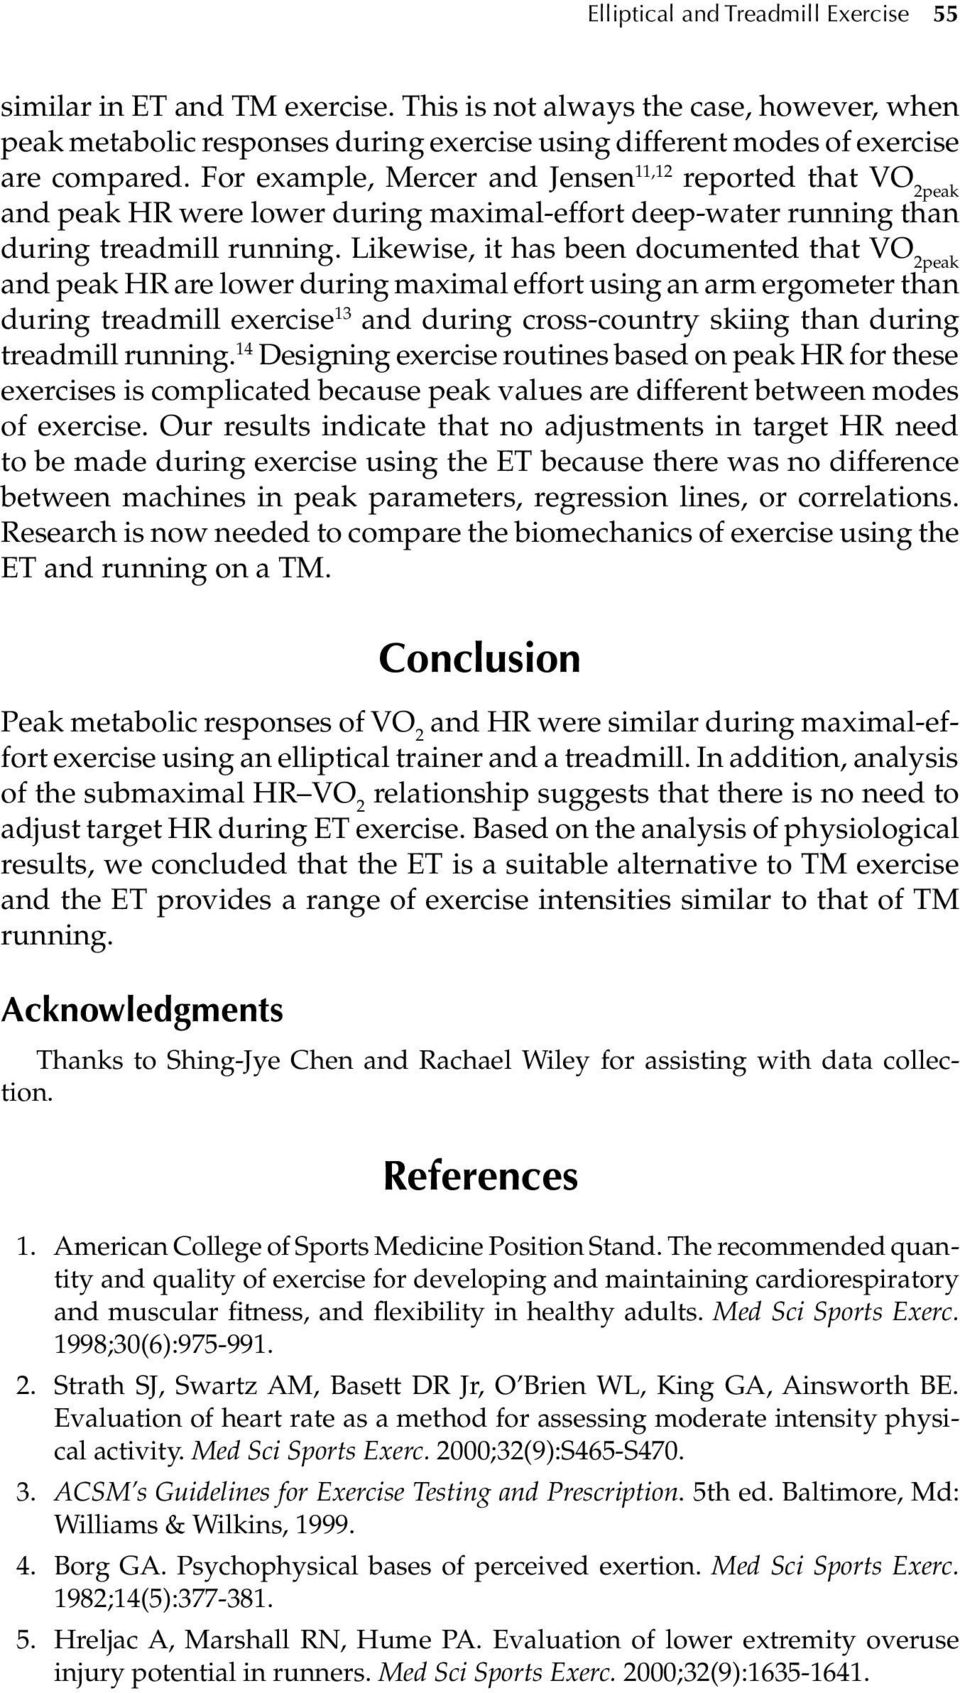 Likewise, it has been documented that VO 2peak and peak HR are lower during maximal effort using an arm ergometer than during treadmill exercise 13 and during cross-country skiing than during